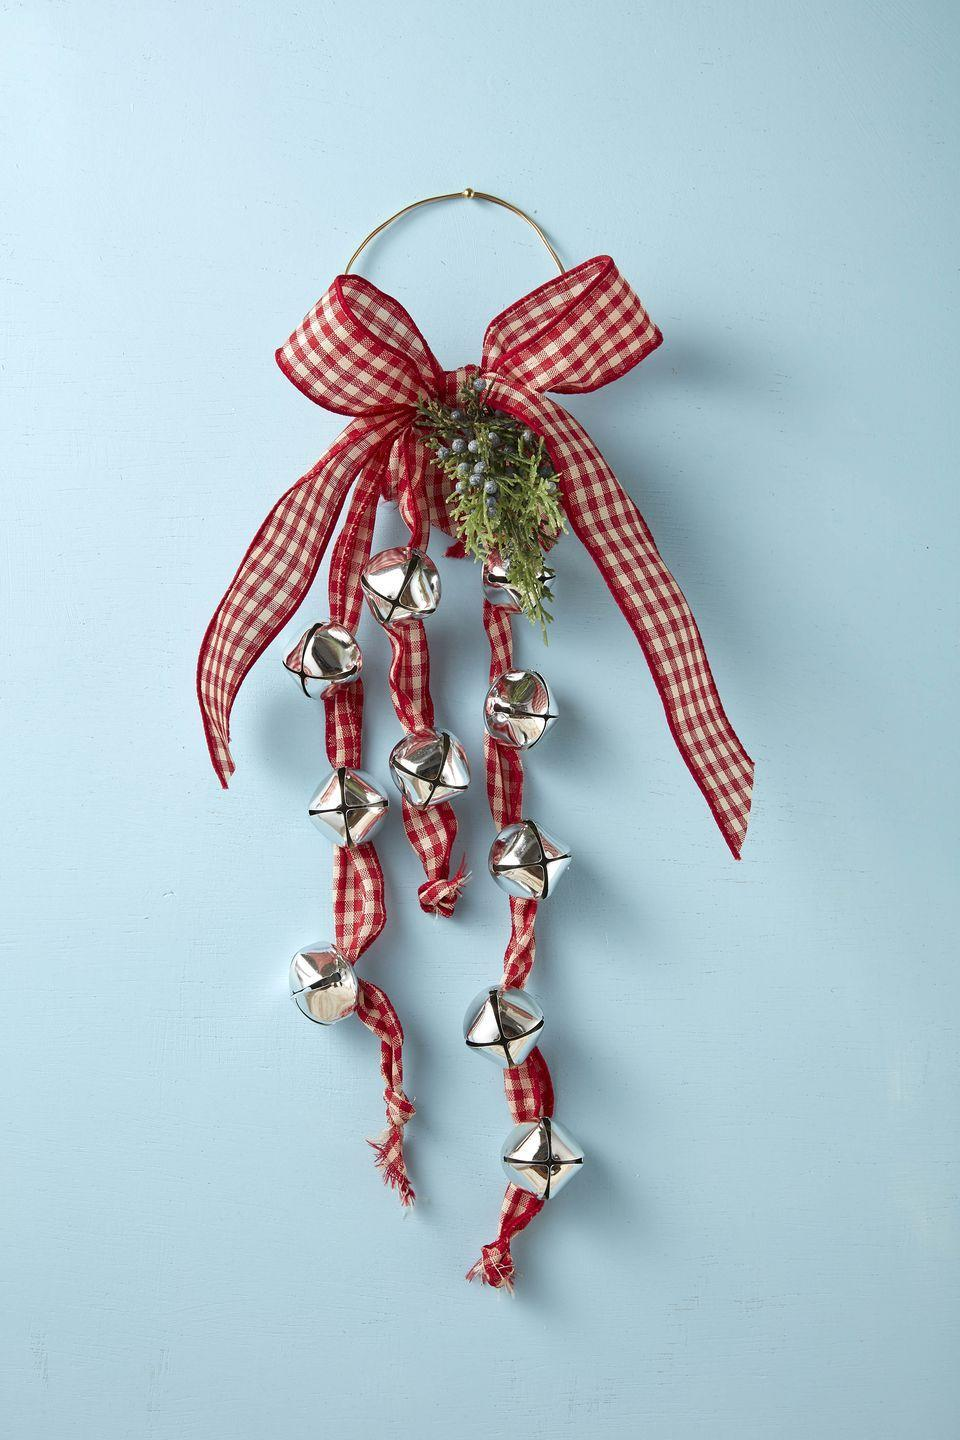 "<p>Kids will love helping you make this sweet holiday noise maker. Have them thread the bells on the ribbon while you tie the bow. Hang on the front door, above the mantel, or at the end of a bed. </p><p><strong>To make: </strong>Thread large jingle bells onto three lengths of ribbon; knot one end of the ribbon. Tie the unknotted end around a small wreath form or a length of wire shaped into a circle. Wire together a small bunch of seasonal greenery; attach to the wreath or circle form. Tie an oversized bow and hot glue to the wire just above the greenery. </p><p><a class=""link rapid-noclick-resp"" href=""https://www.amazon.com/Jingle-Christmas-Festival-Decoration-Silver/dp/B074W73J88/ref=sr_1_2_sspa?tag=syn-yahoo-20&ascsubtag=%5Bartid%7C10050.g.5030%5Bsrc%7Cyahoo-us"" rel=""nofollow noopener"" target=""_blank"" data-ylk=""slk:SHOP LARGE JINGLE BELLS"">SHOP LARGE JINGLE BELLS</a></p>"